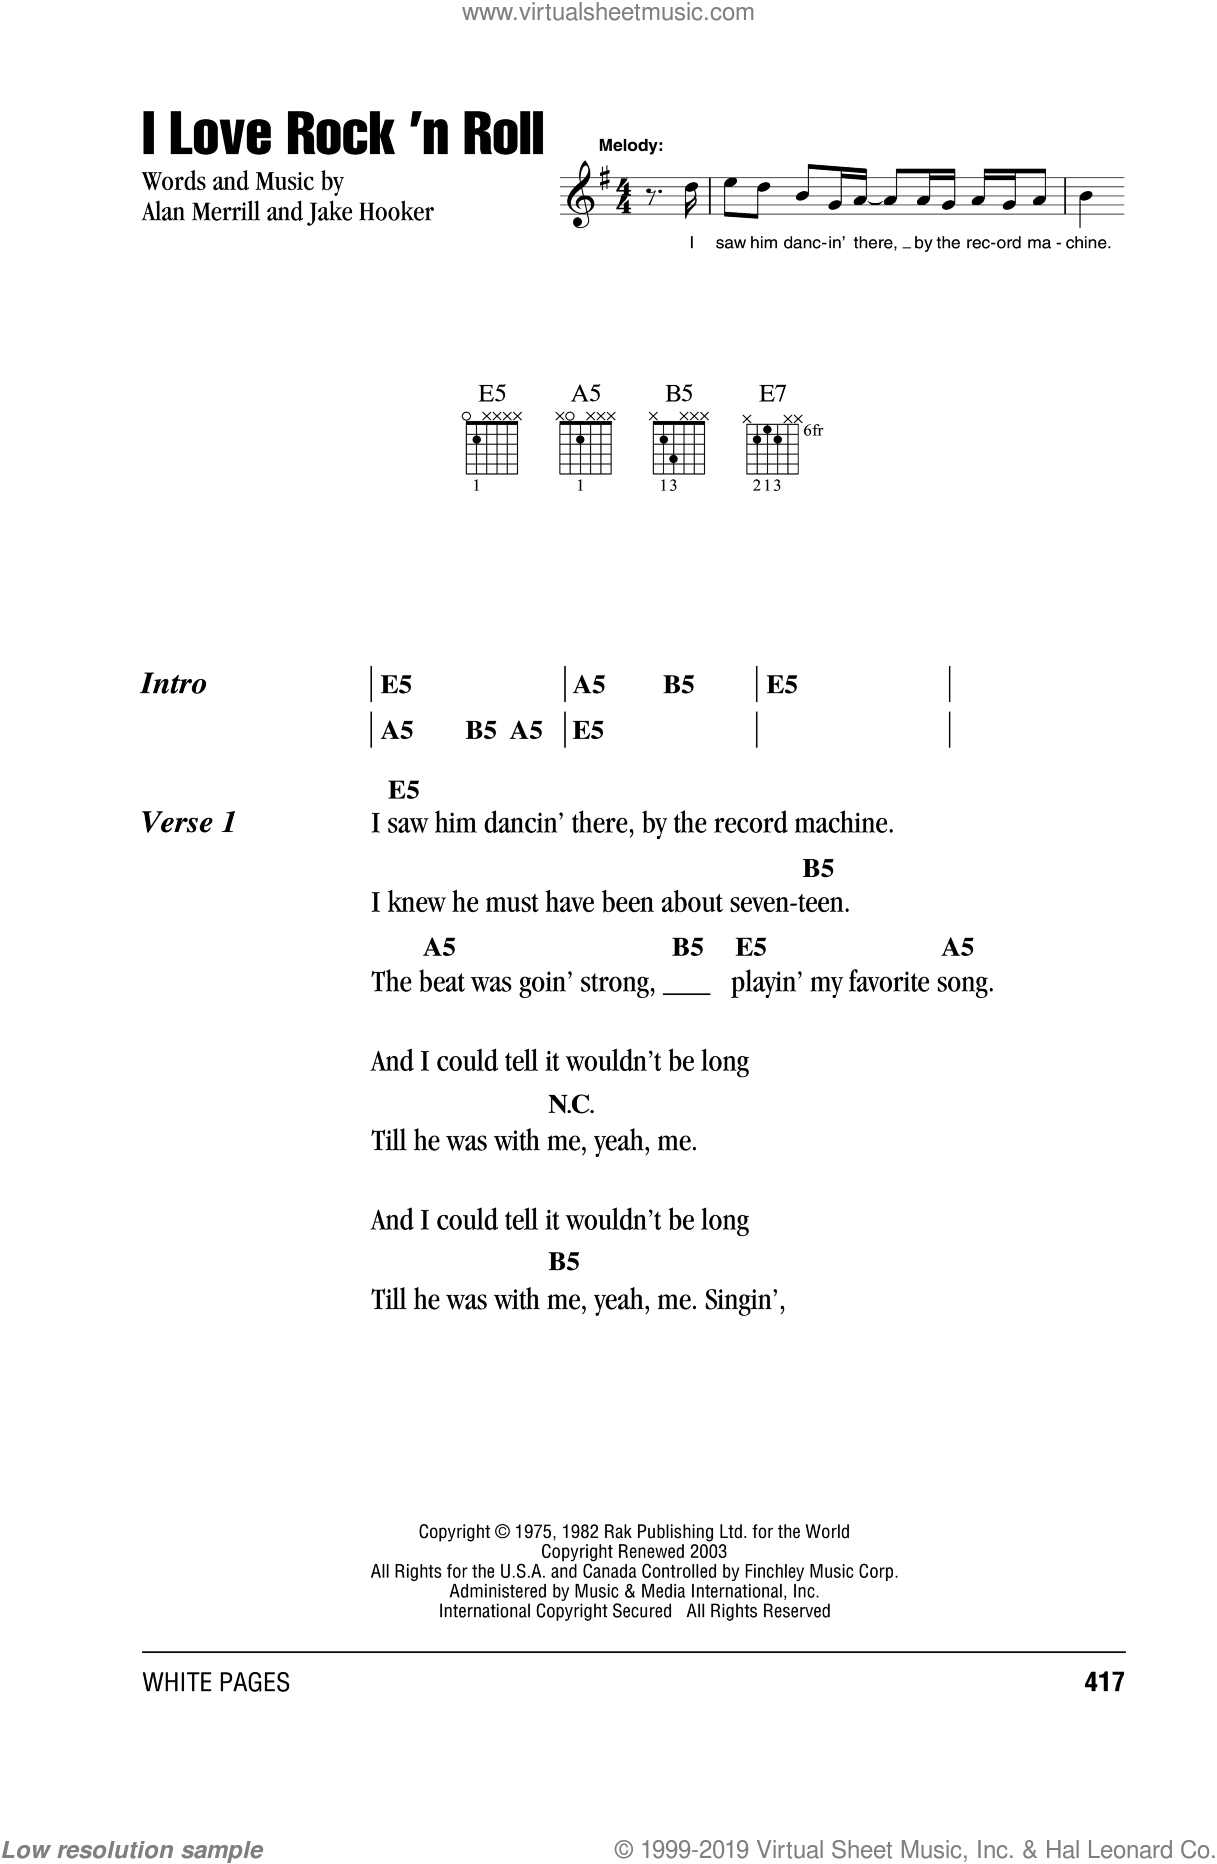 I Love Rock 'N Roll sheet music for guitar (chords) by Joan Jett & The Blackhearts, Alan Merrill and Jake Hooker, intermediate. Score Image Preview.